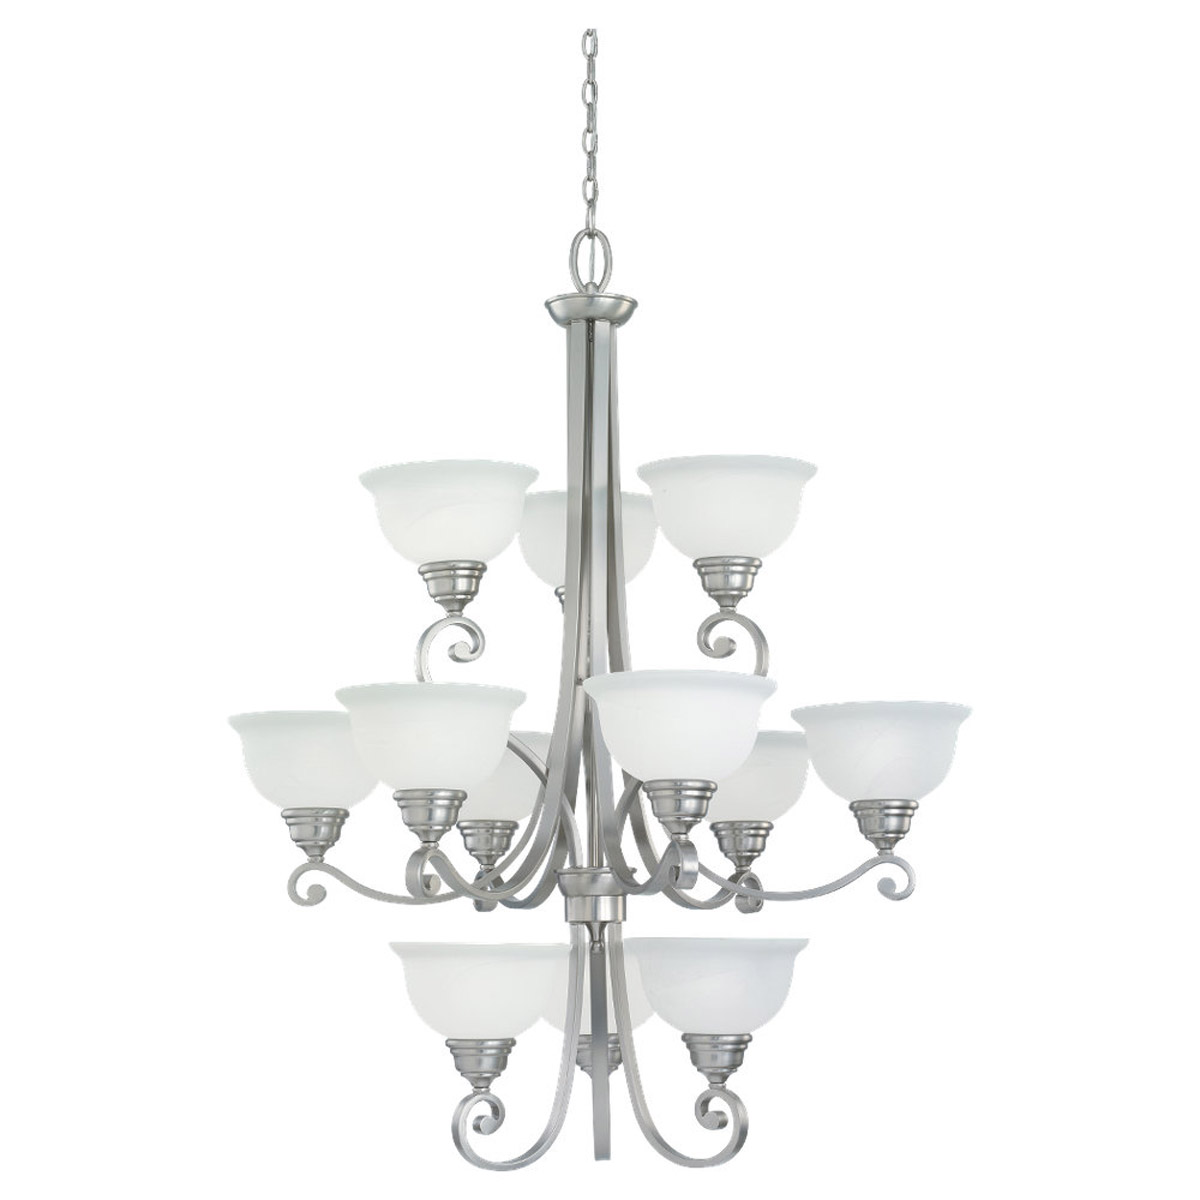 Sea Gull Lighting Serenity 12 Light Fluorescent Chandelier in Brushed Nickel 39260BLE-962